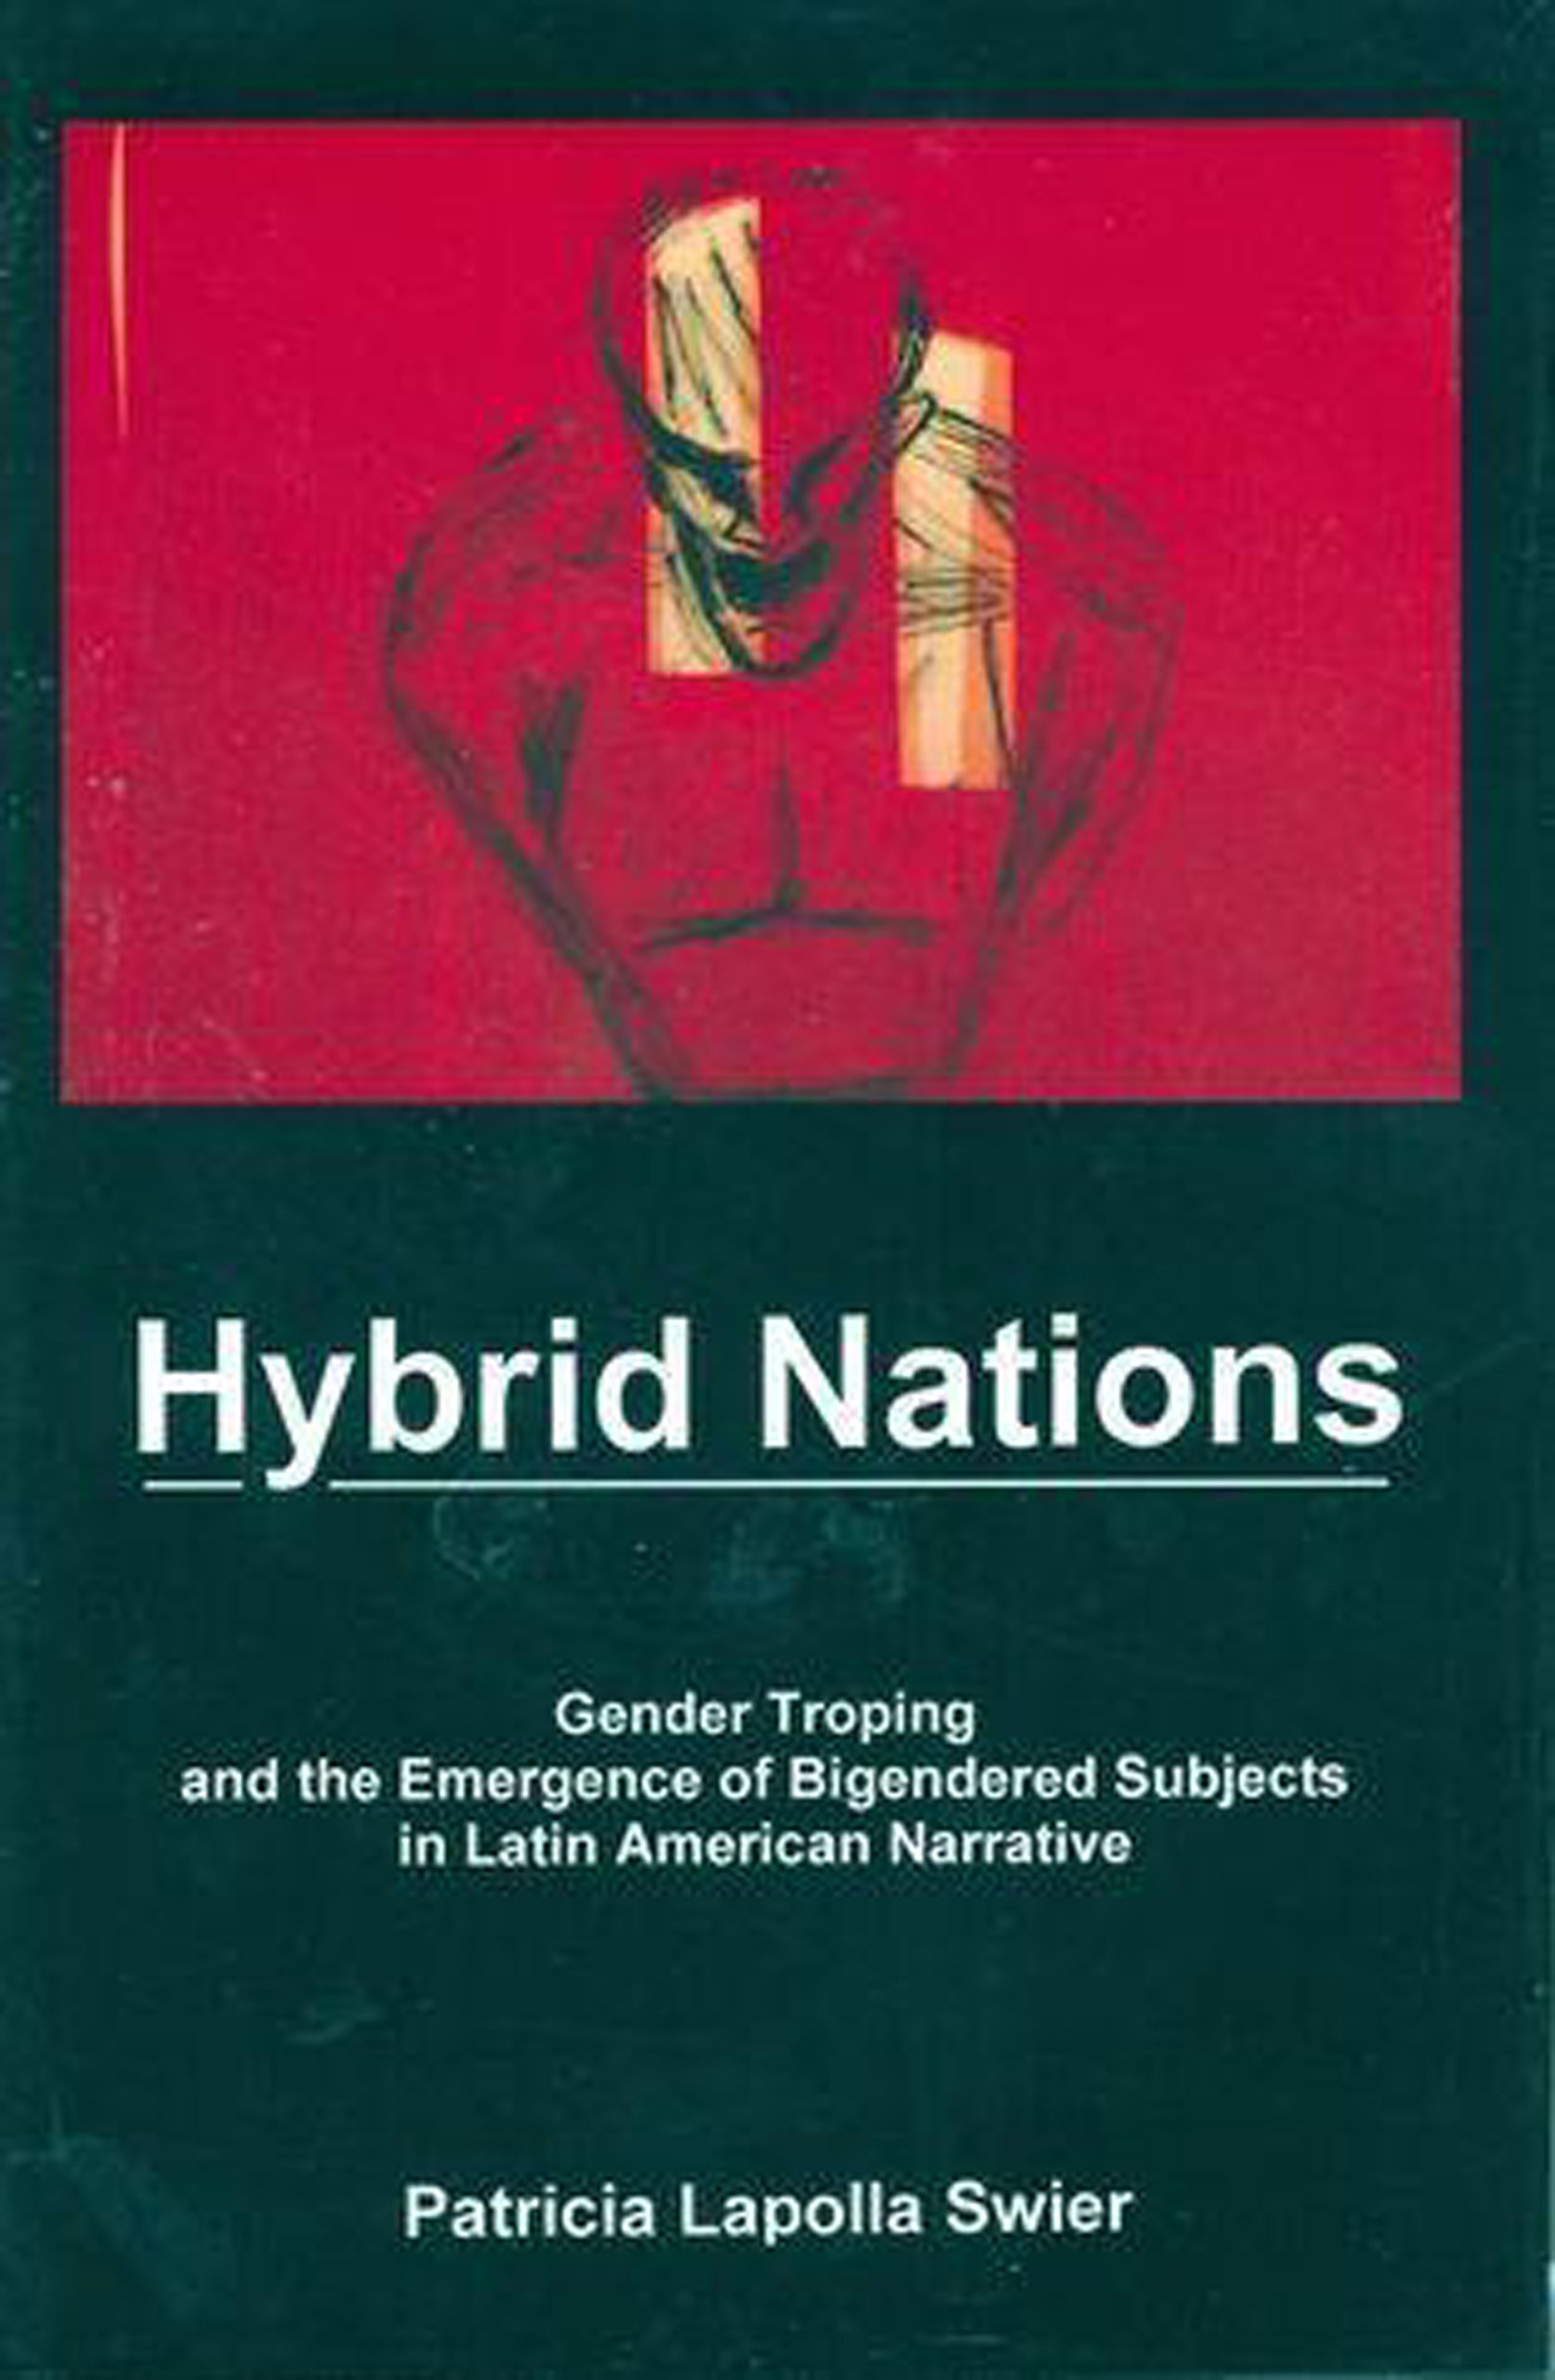 Hybrid Nations: Gender Troping and the Emergence of Bigendered Subjects in Latin American Narrative pdf